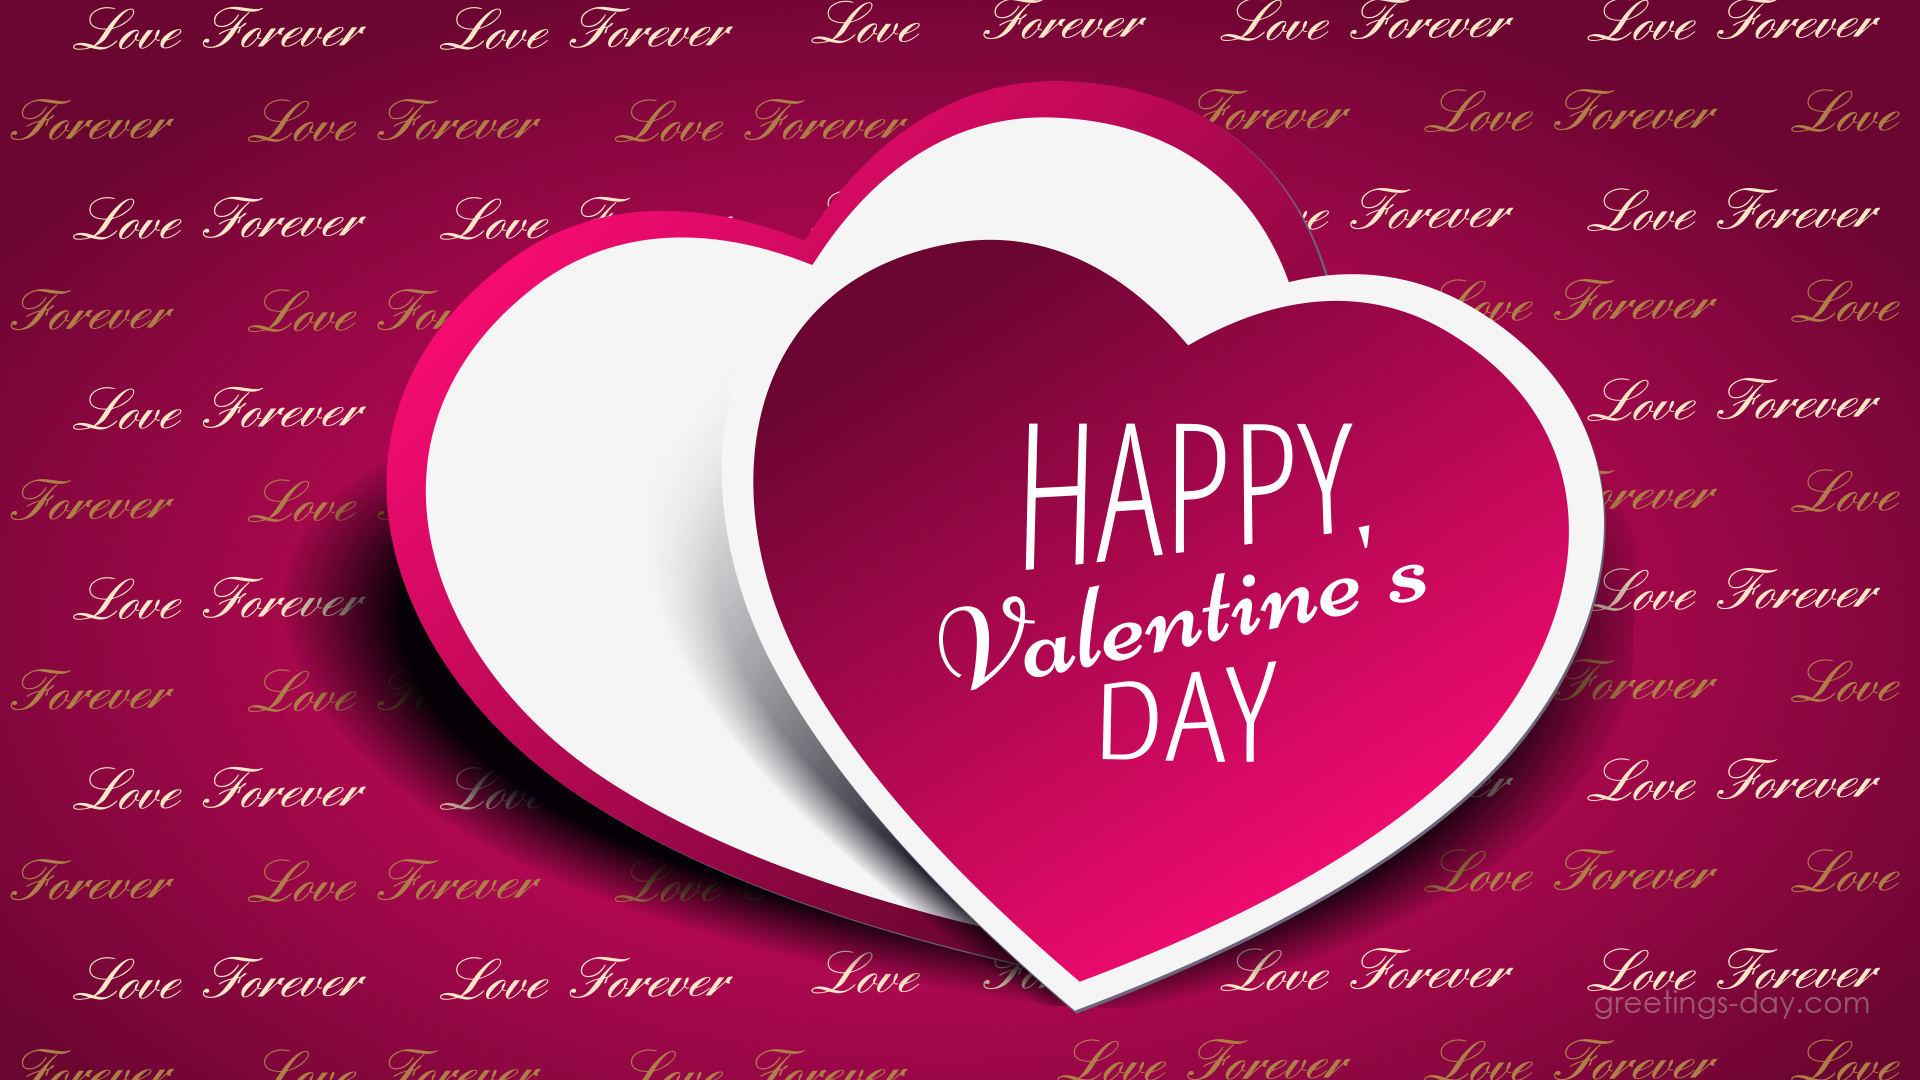 Valentines Day Picture Desktop wallpaper for Him with Love – Valentines Day Cards for Him